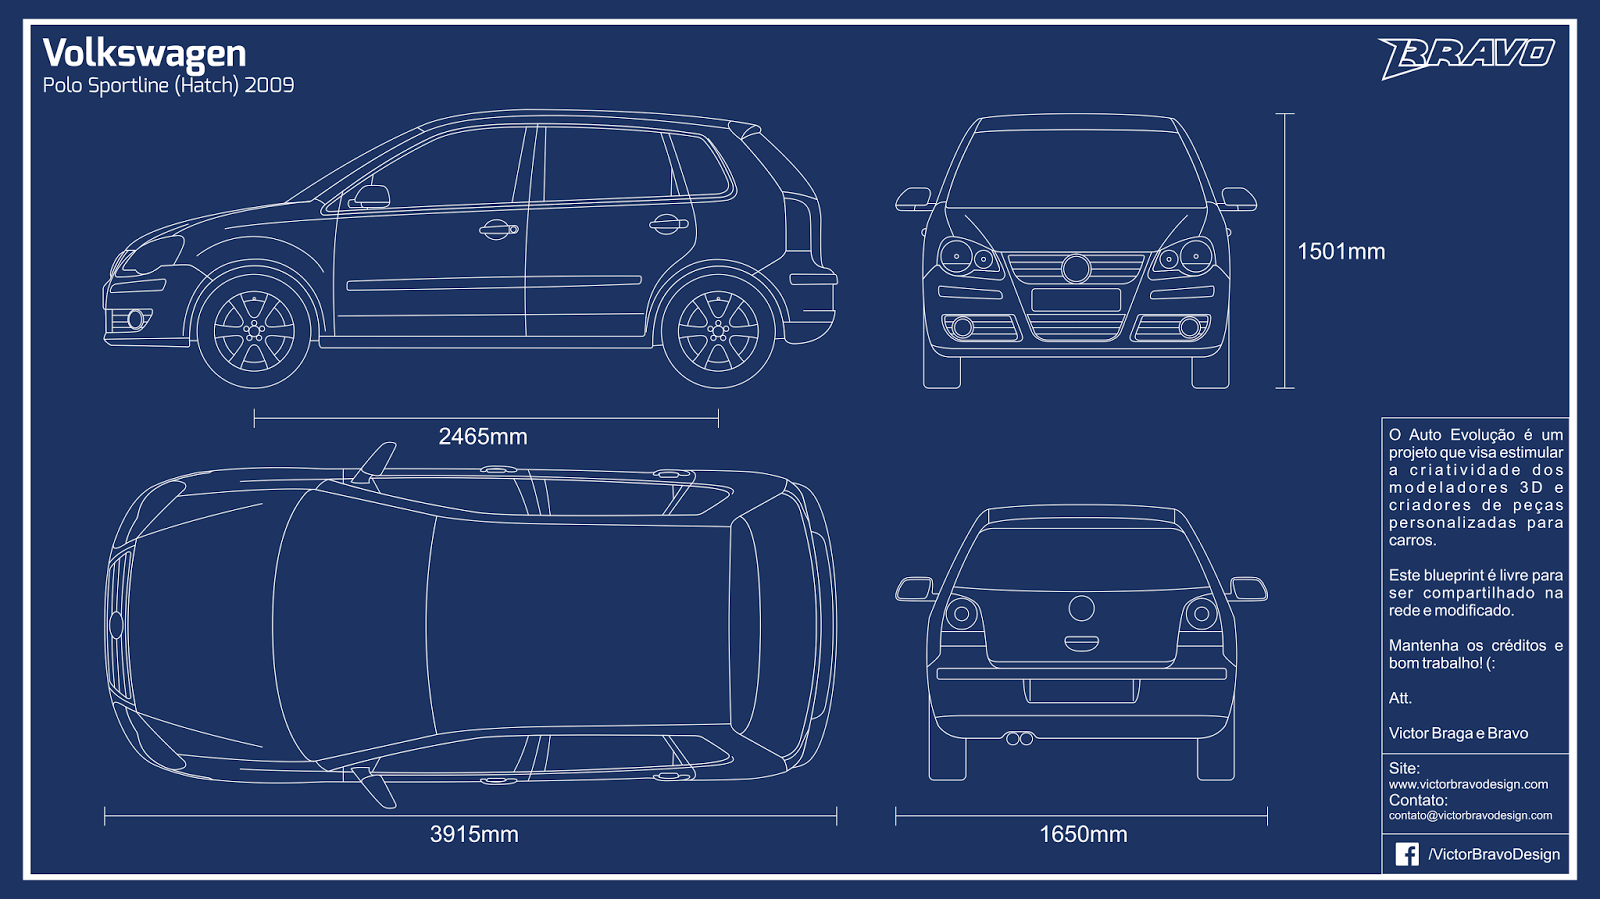 Imagem do blueprint do Volkswagen Polo Sportline (Hatch) 2009